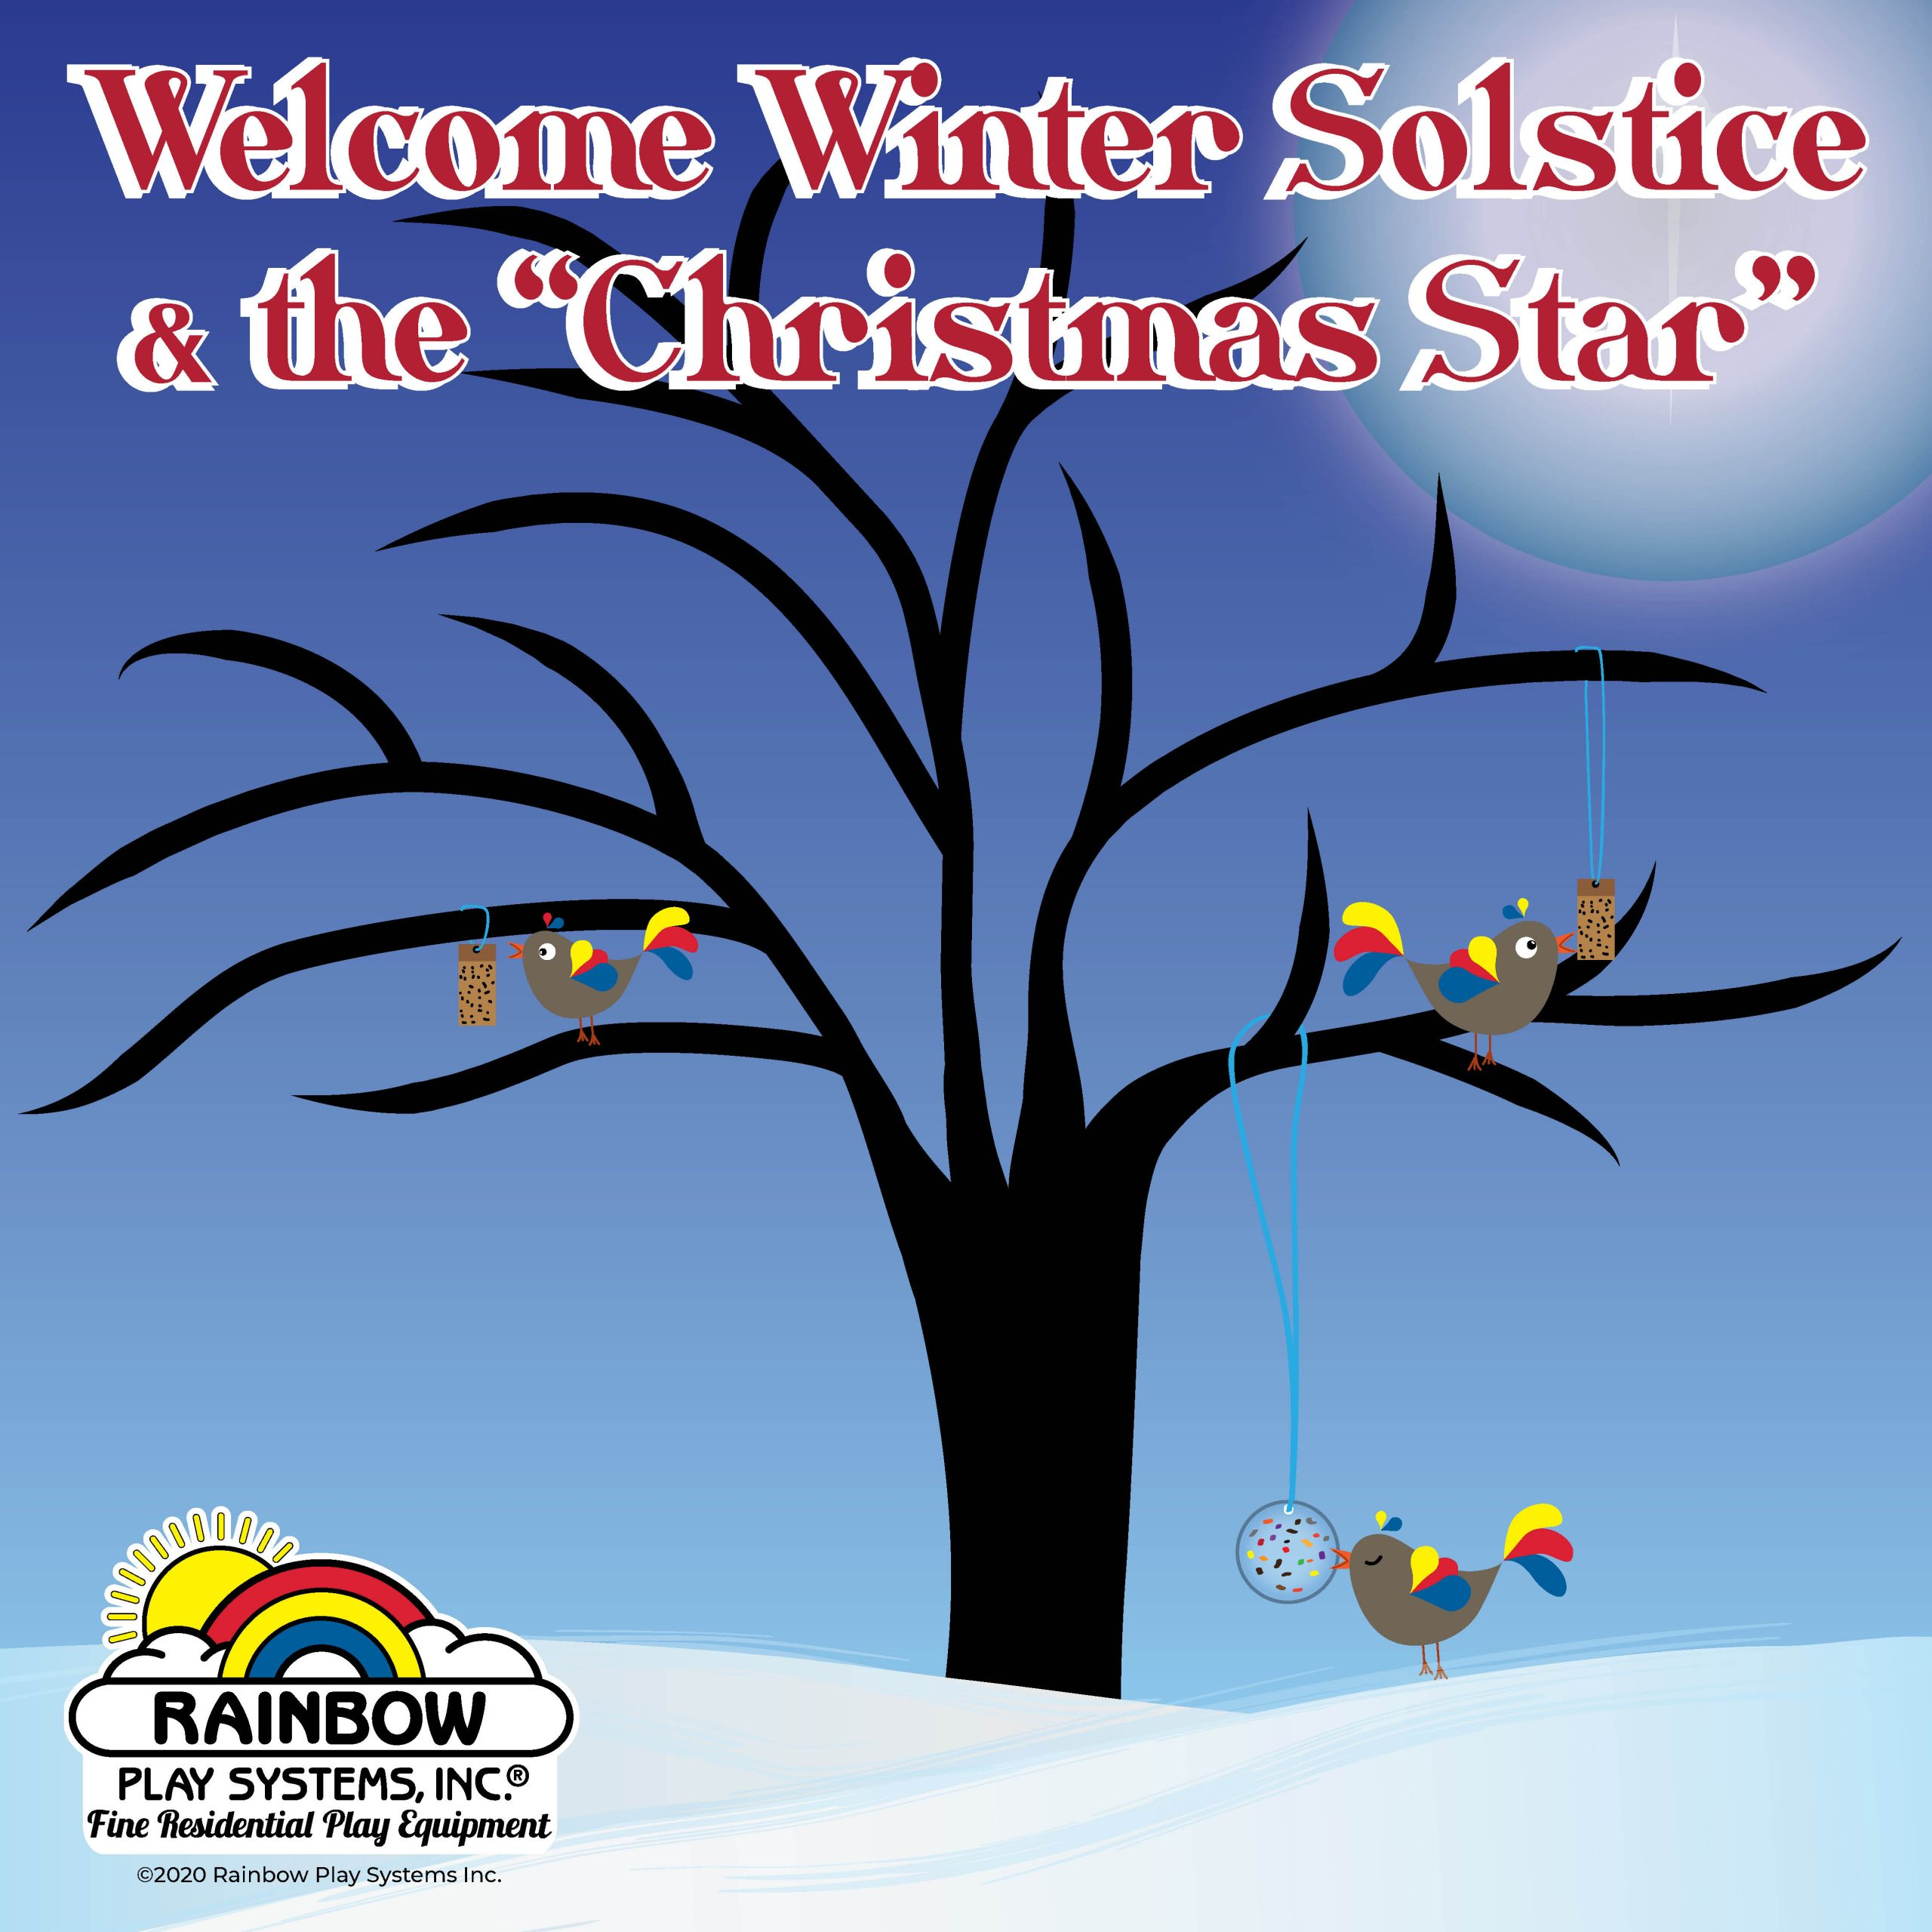 Winter Solstice and the Christmas Star